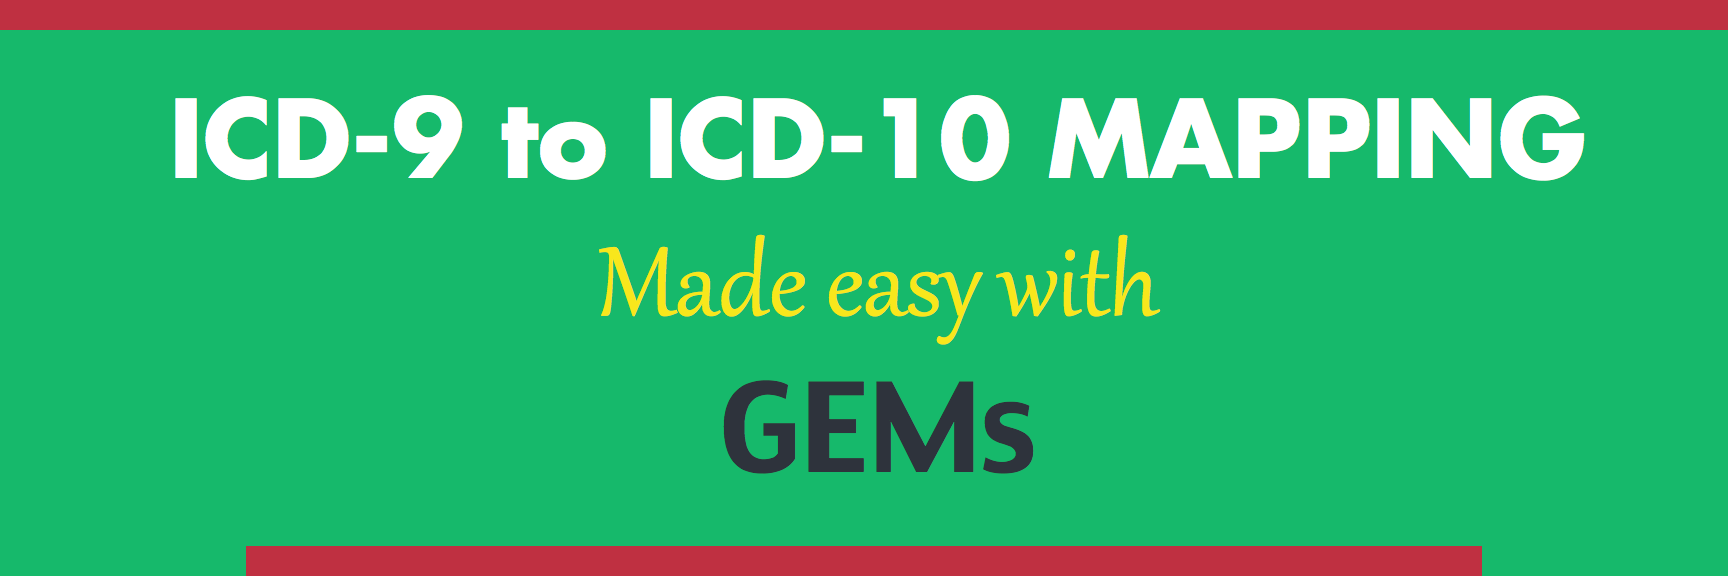 translating between ICD-9 and ICD-10